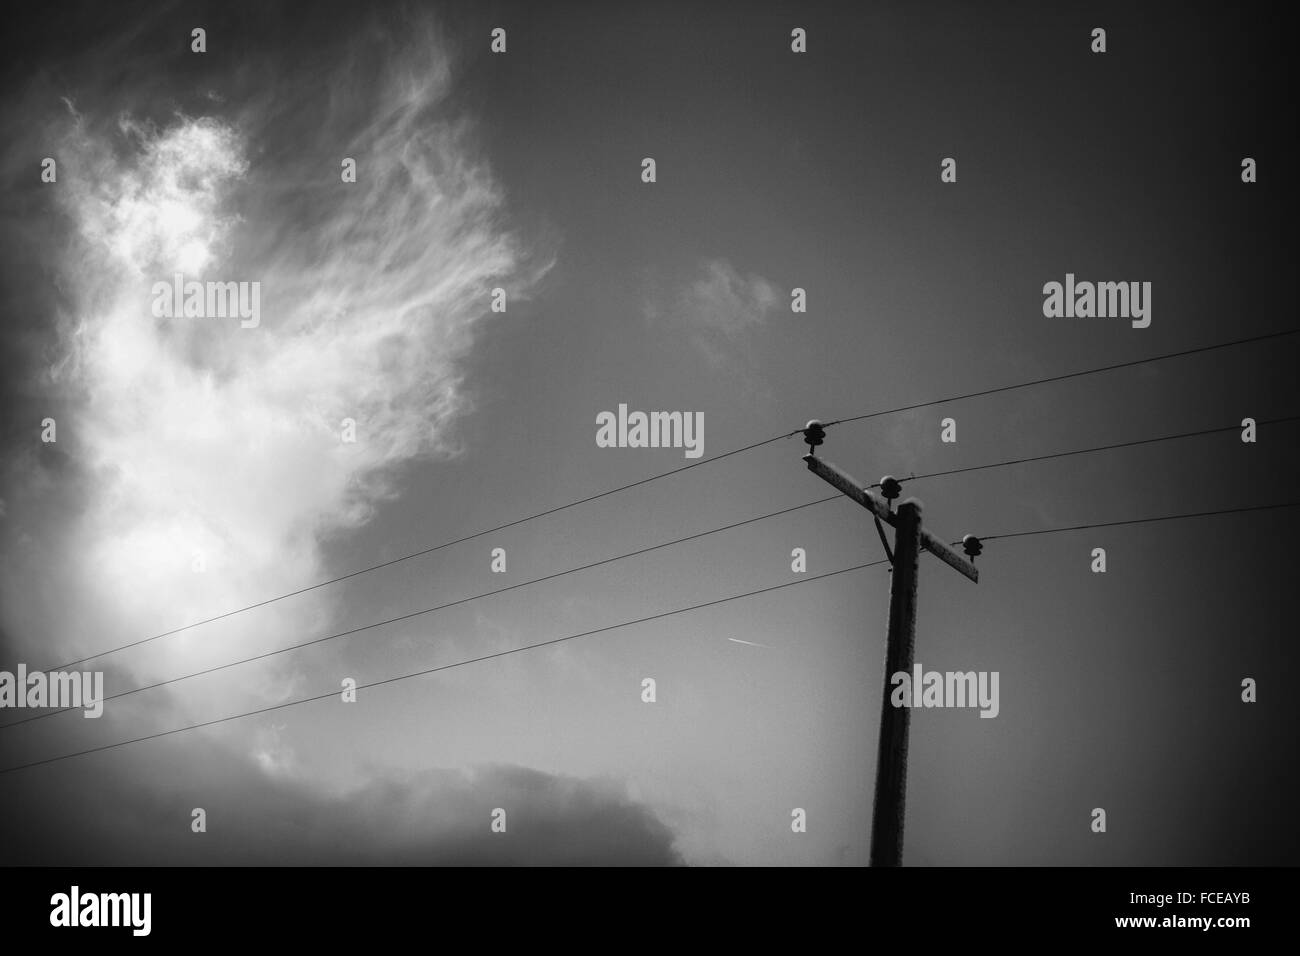 Electrical Pole Stock Photos & Electrical Pole Stock Images - Page 2 ...